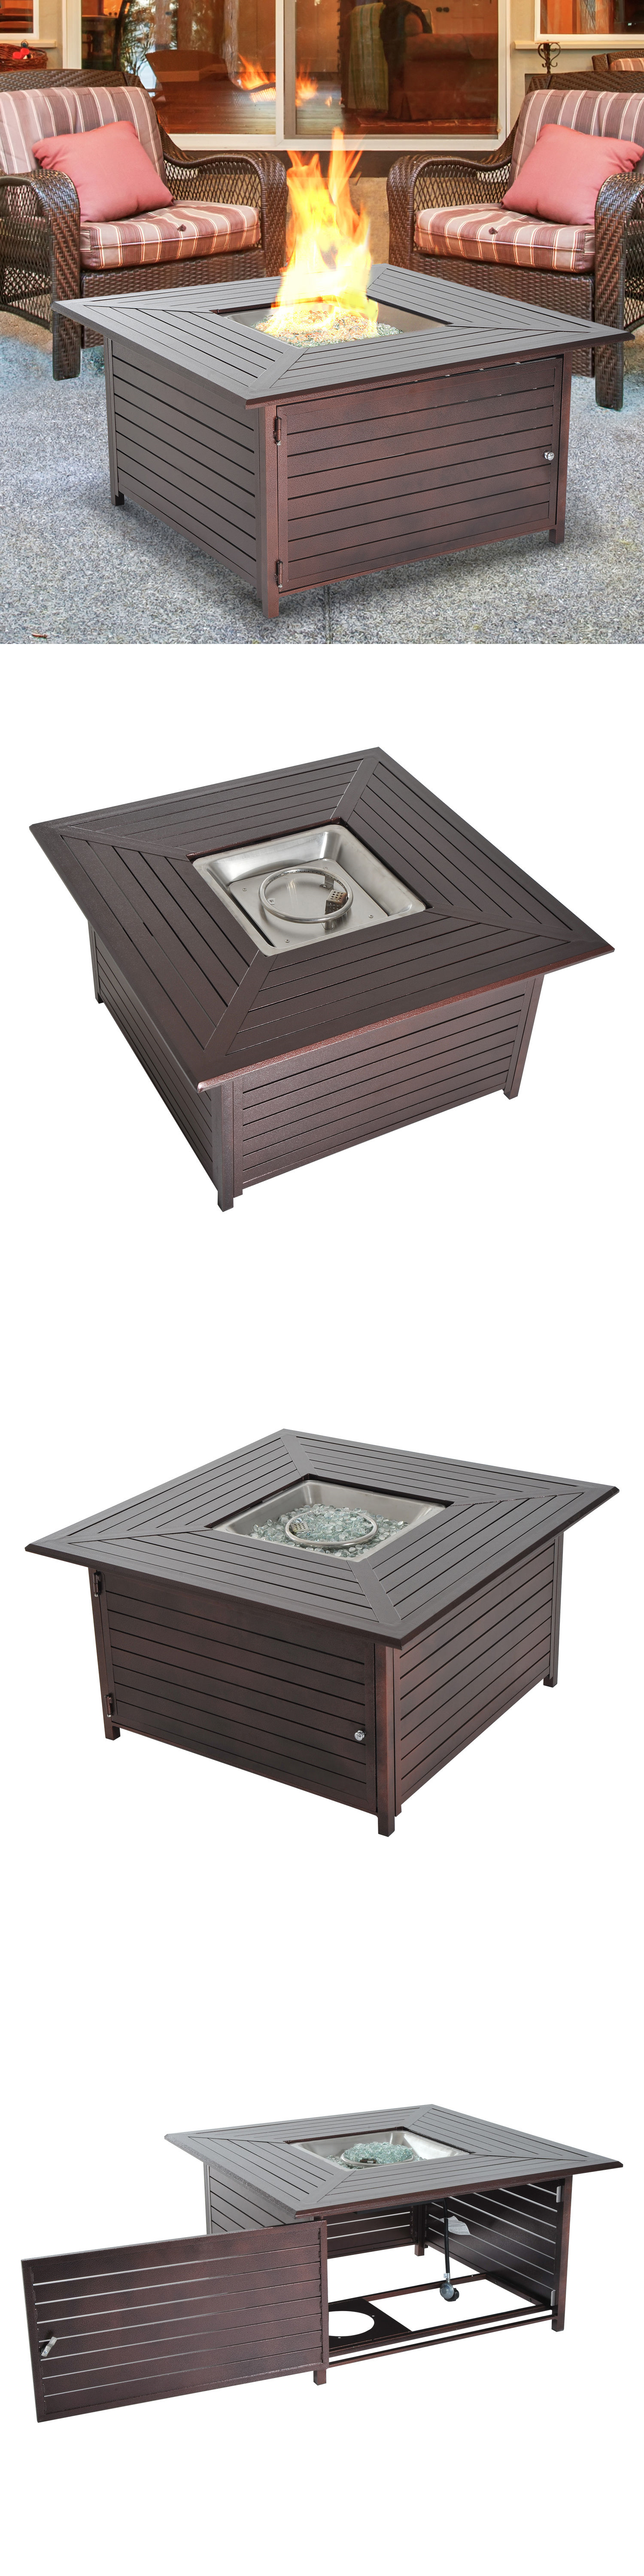 028a211724057ae672ee8933e90b9e62 Top Result 49 Luxury Outdoor Tabletop Fireplace Photos 2018 Xzw1